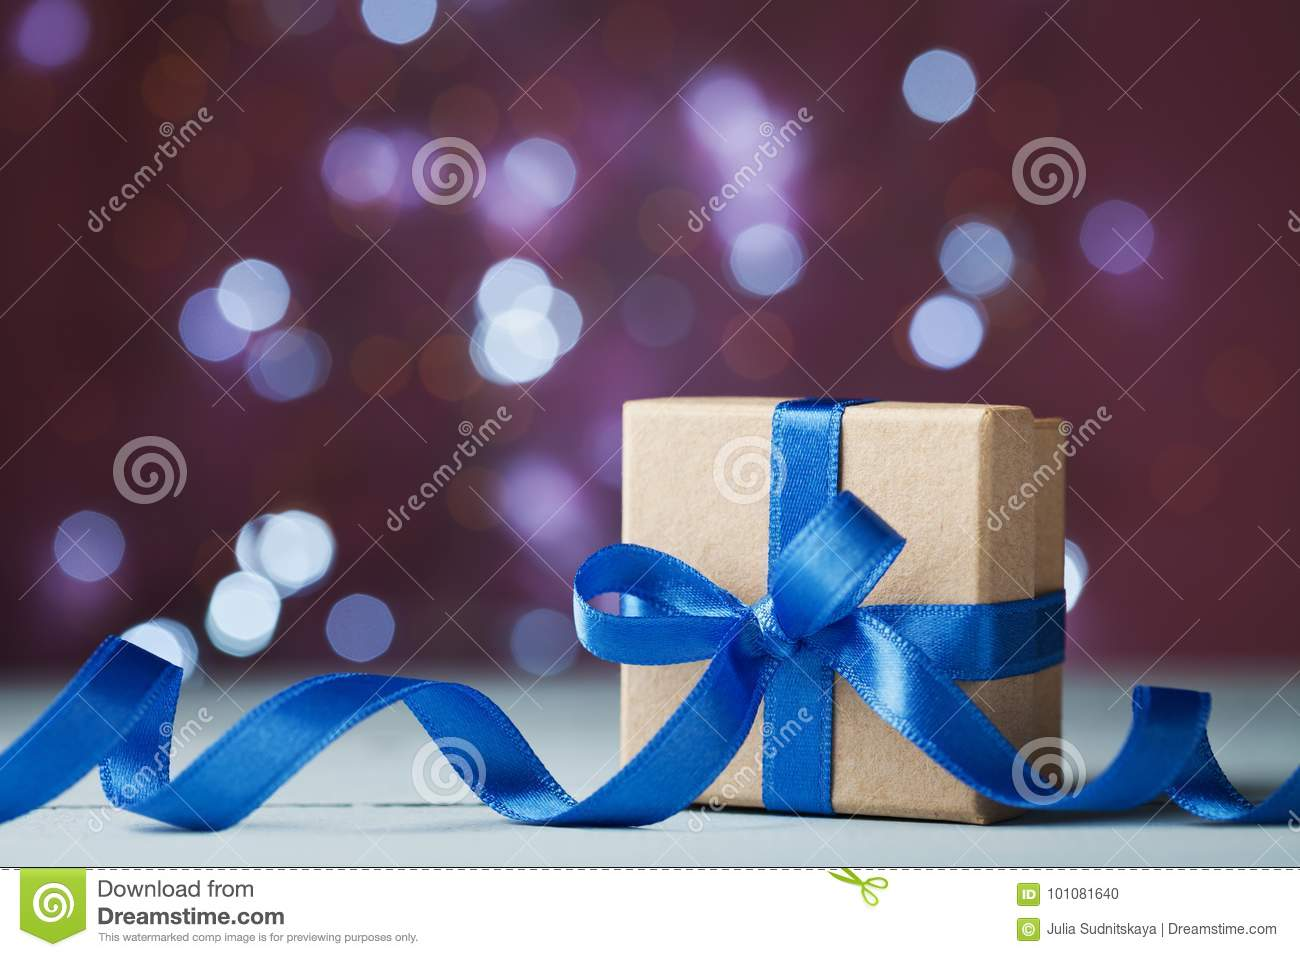 Gift box or present against festive bokeh background. Holiday greeting card for Christmas, New Year or birthday.